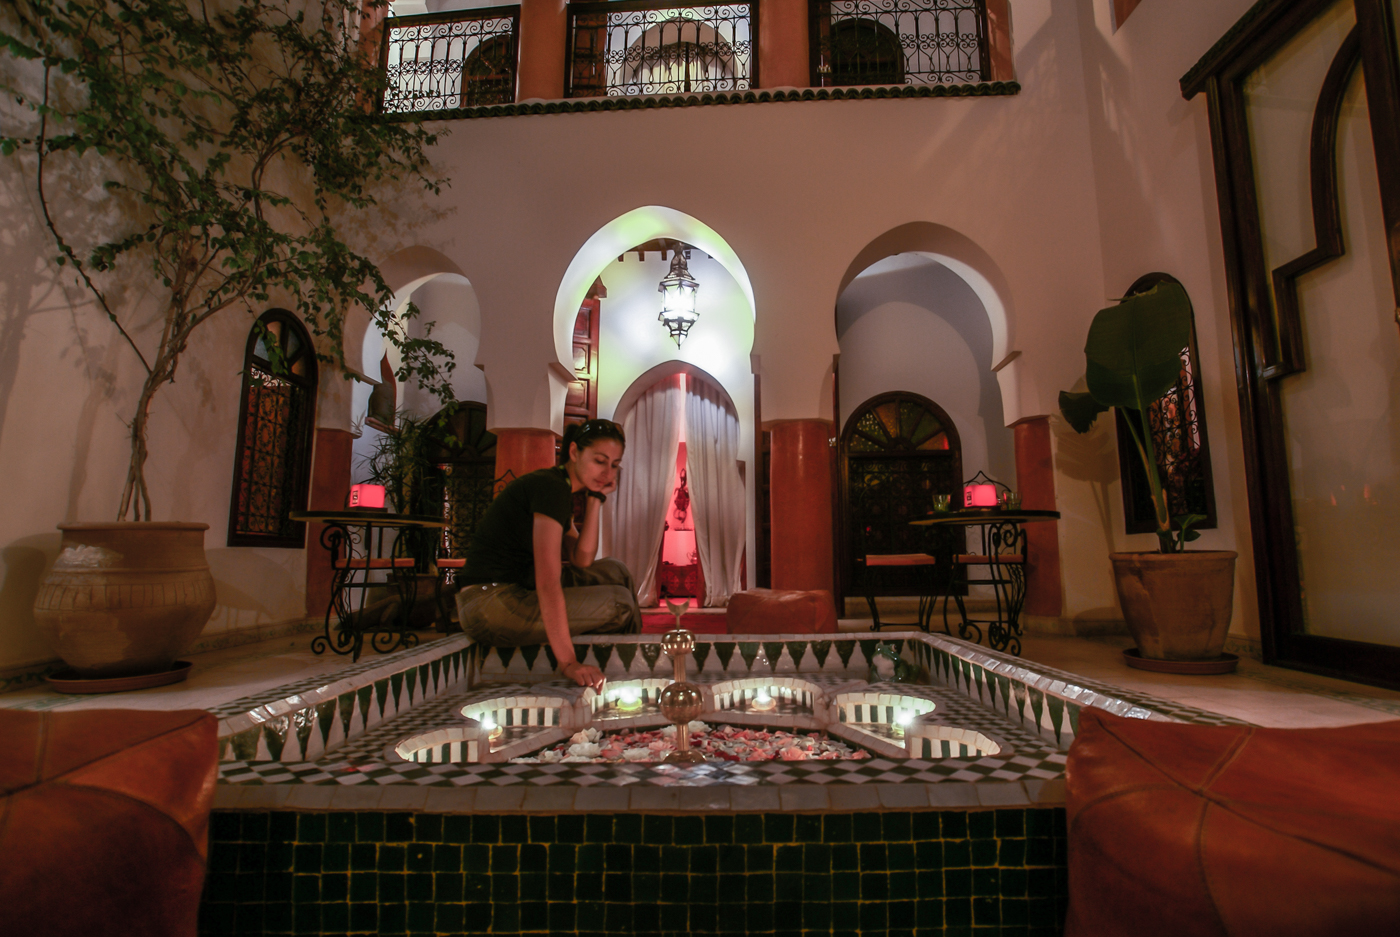 Maison Bel Baraka is at the heart of the Marrakesh Medina and is run by a Moroccan - Greek couple